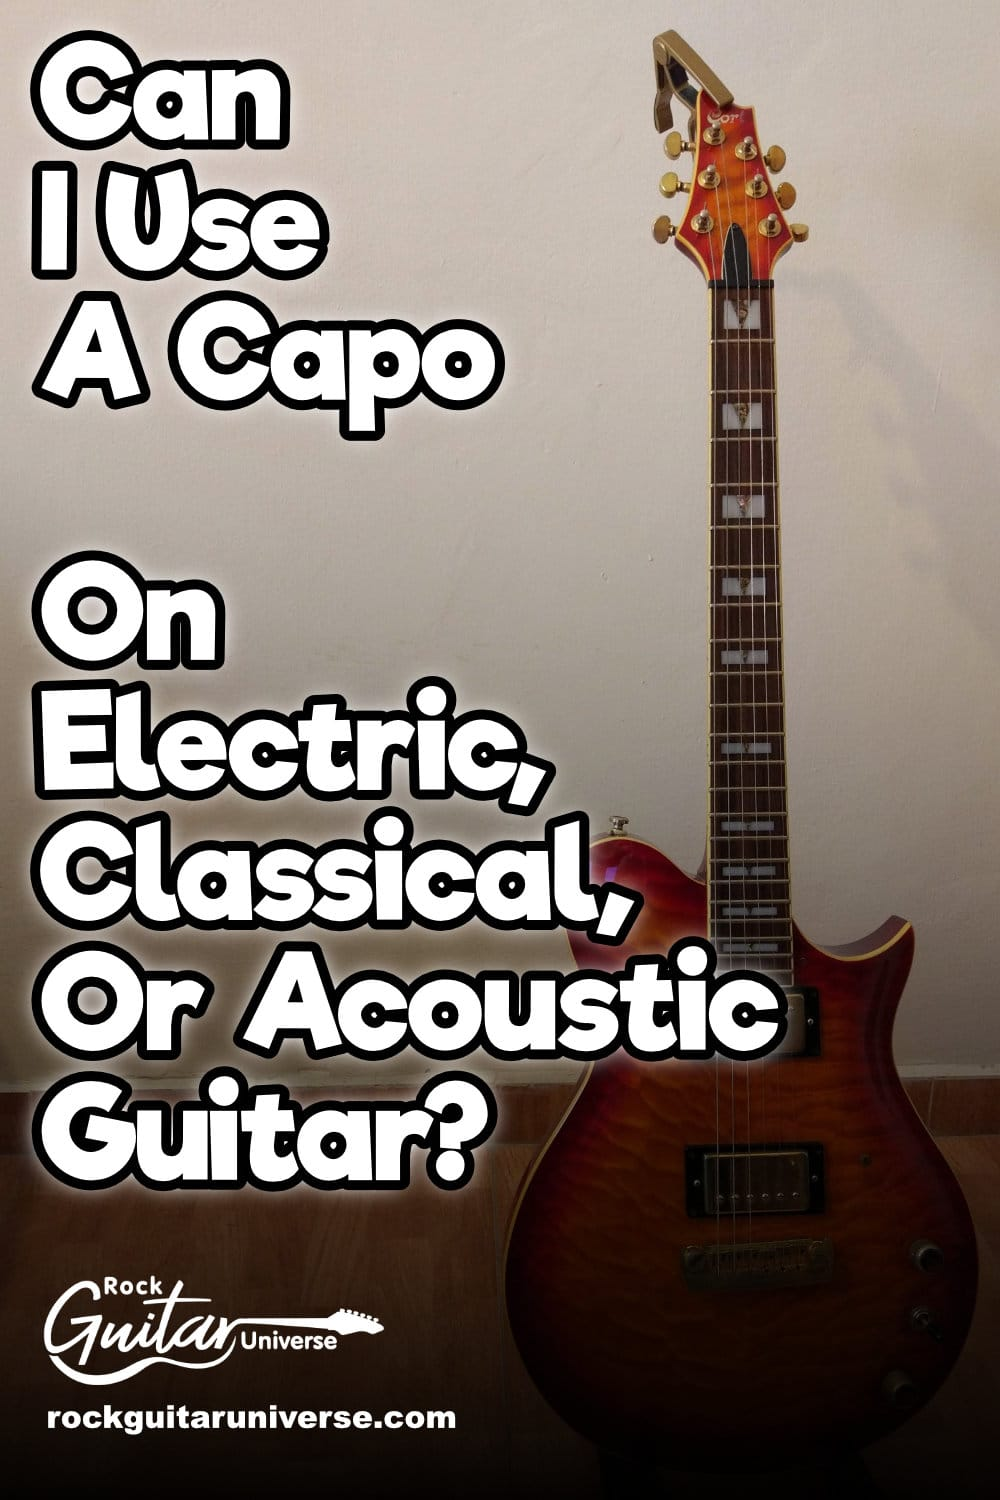 Can I Use A Capo On Electric Classical Or Acoustic Guitar Guitar Acoustic Guitar Rock Guitar